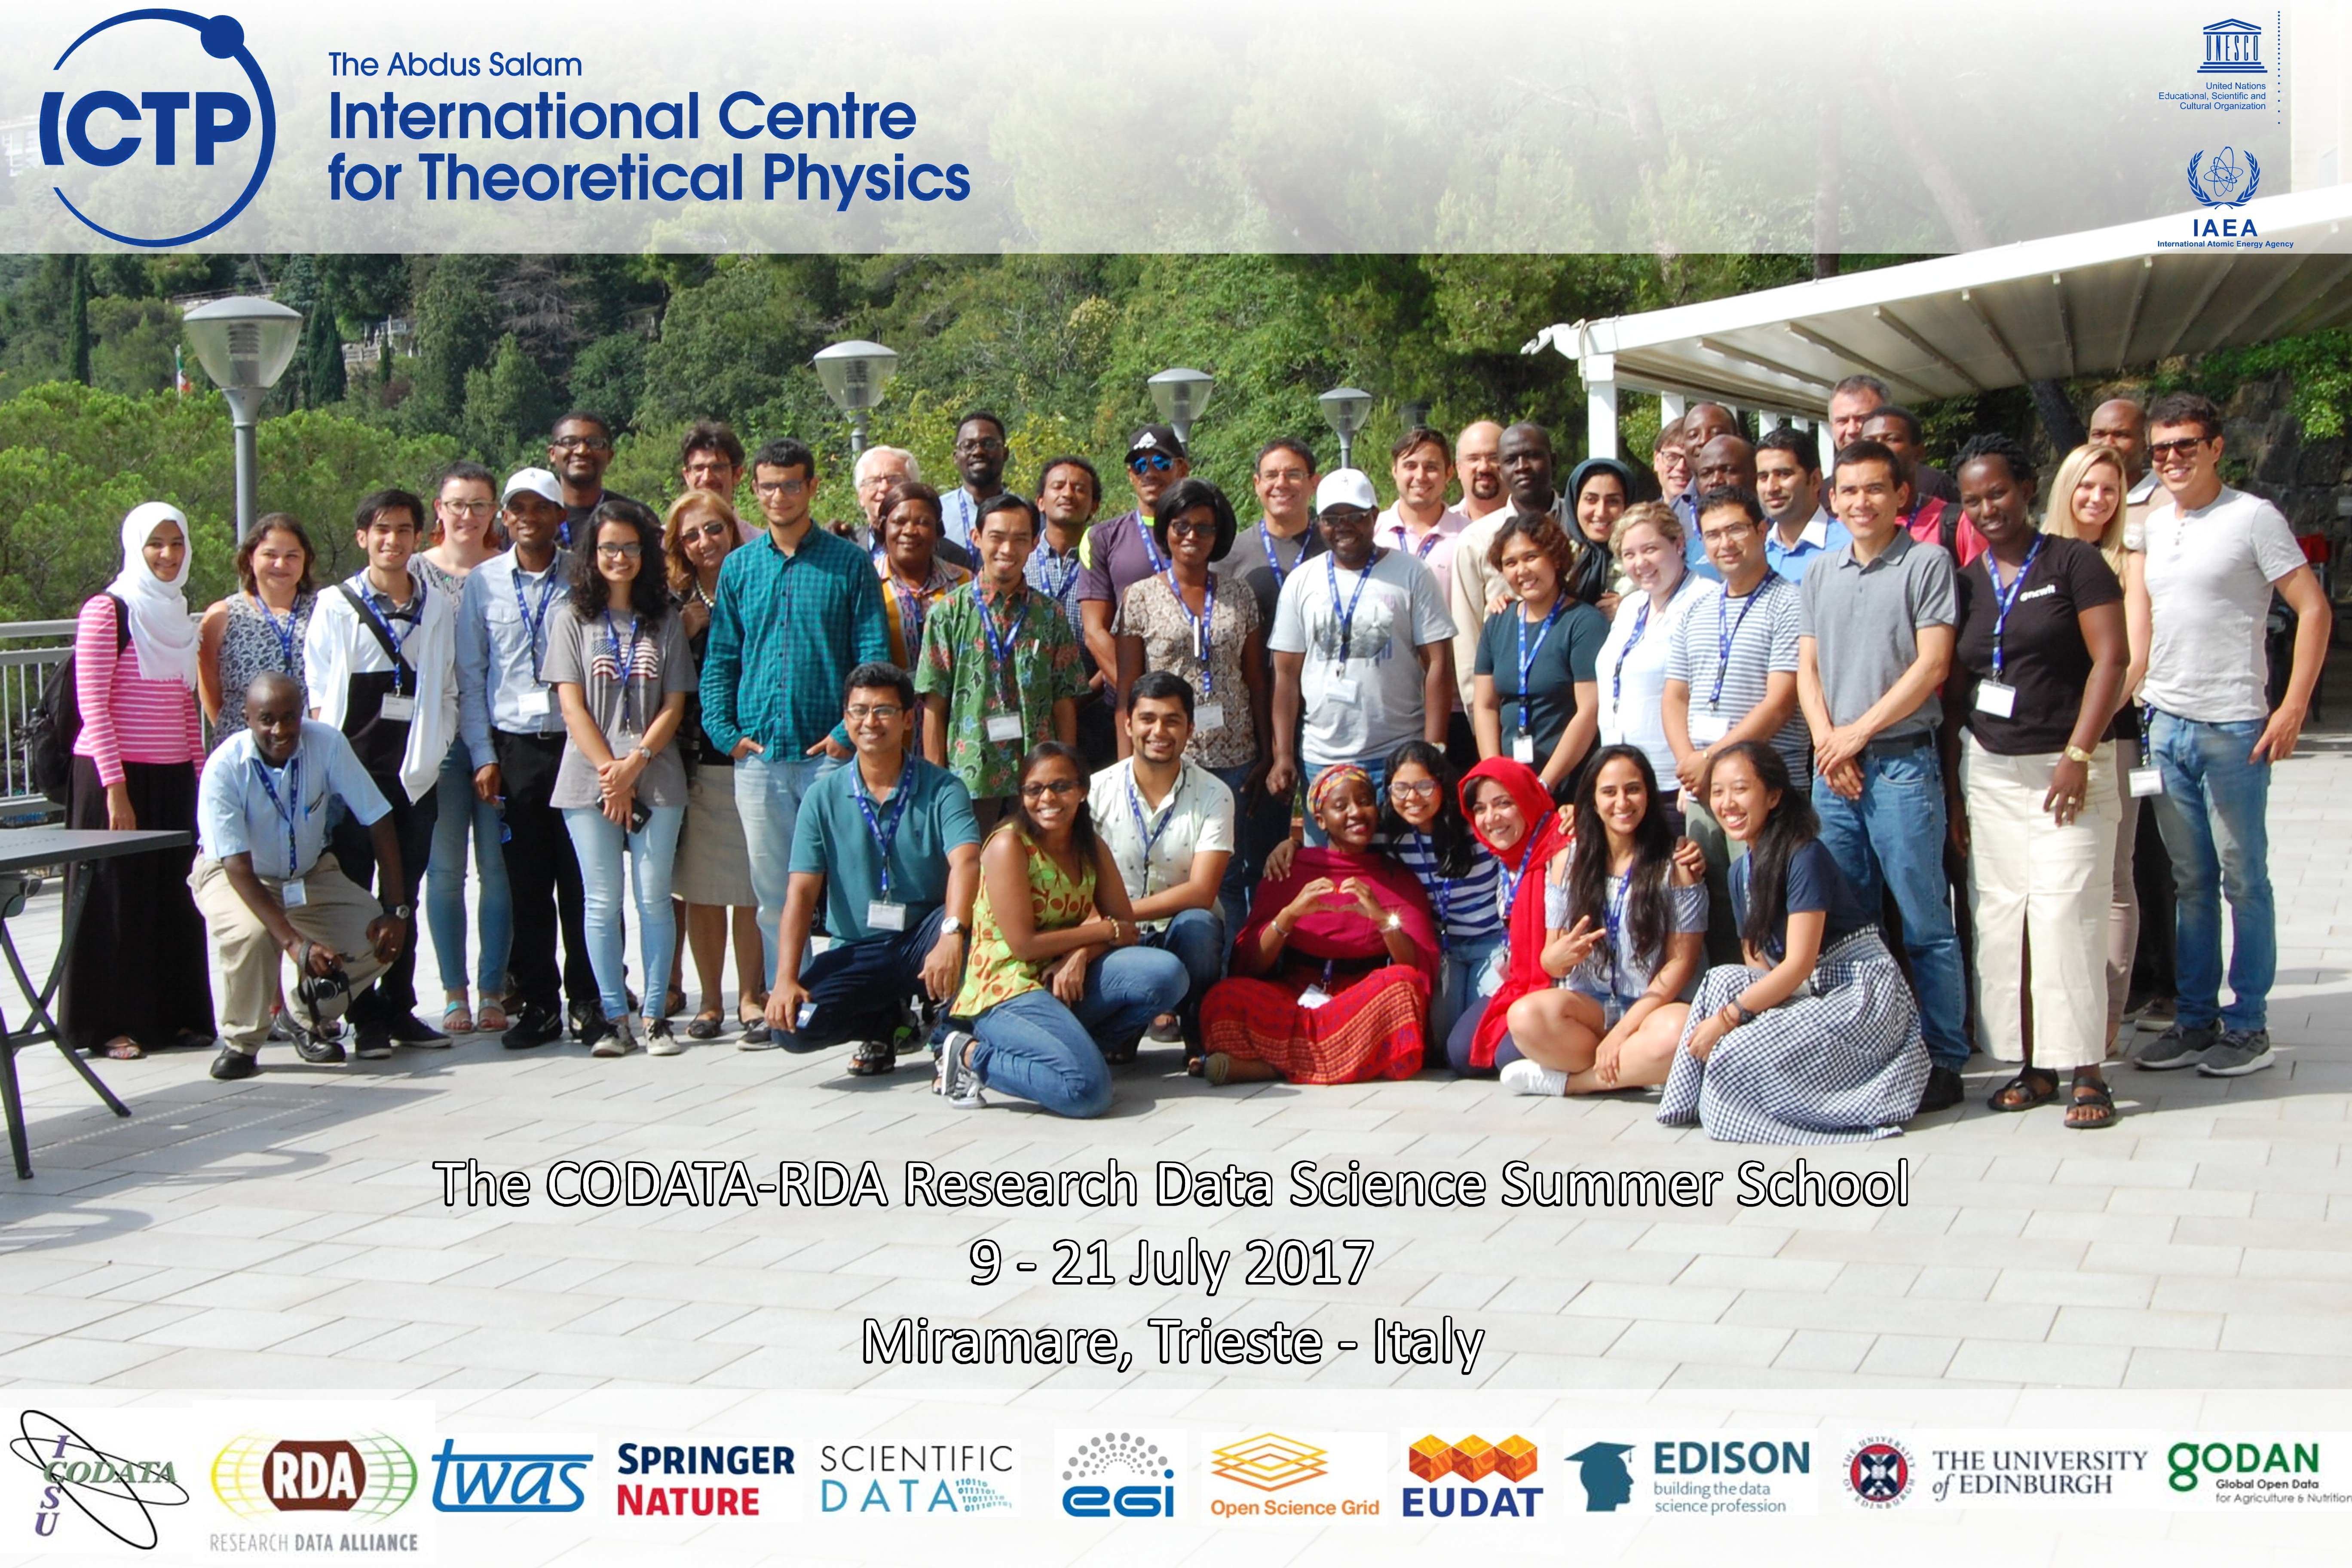 FEW DAYS TO GO: Applications Invited to Participate in the CODATA-RDA Research Data Science Summer School and Advanced Workshops, Trieste, Italy